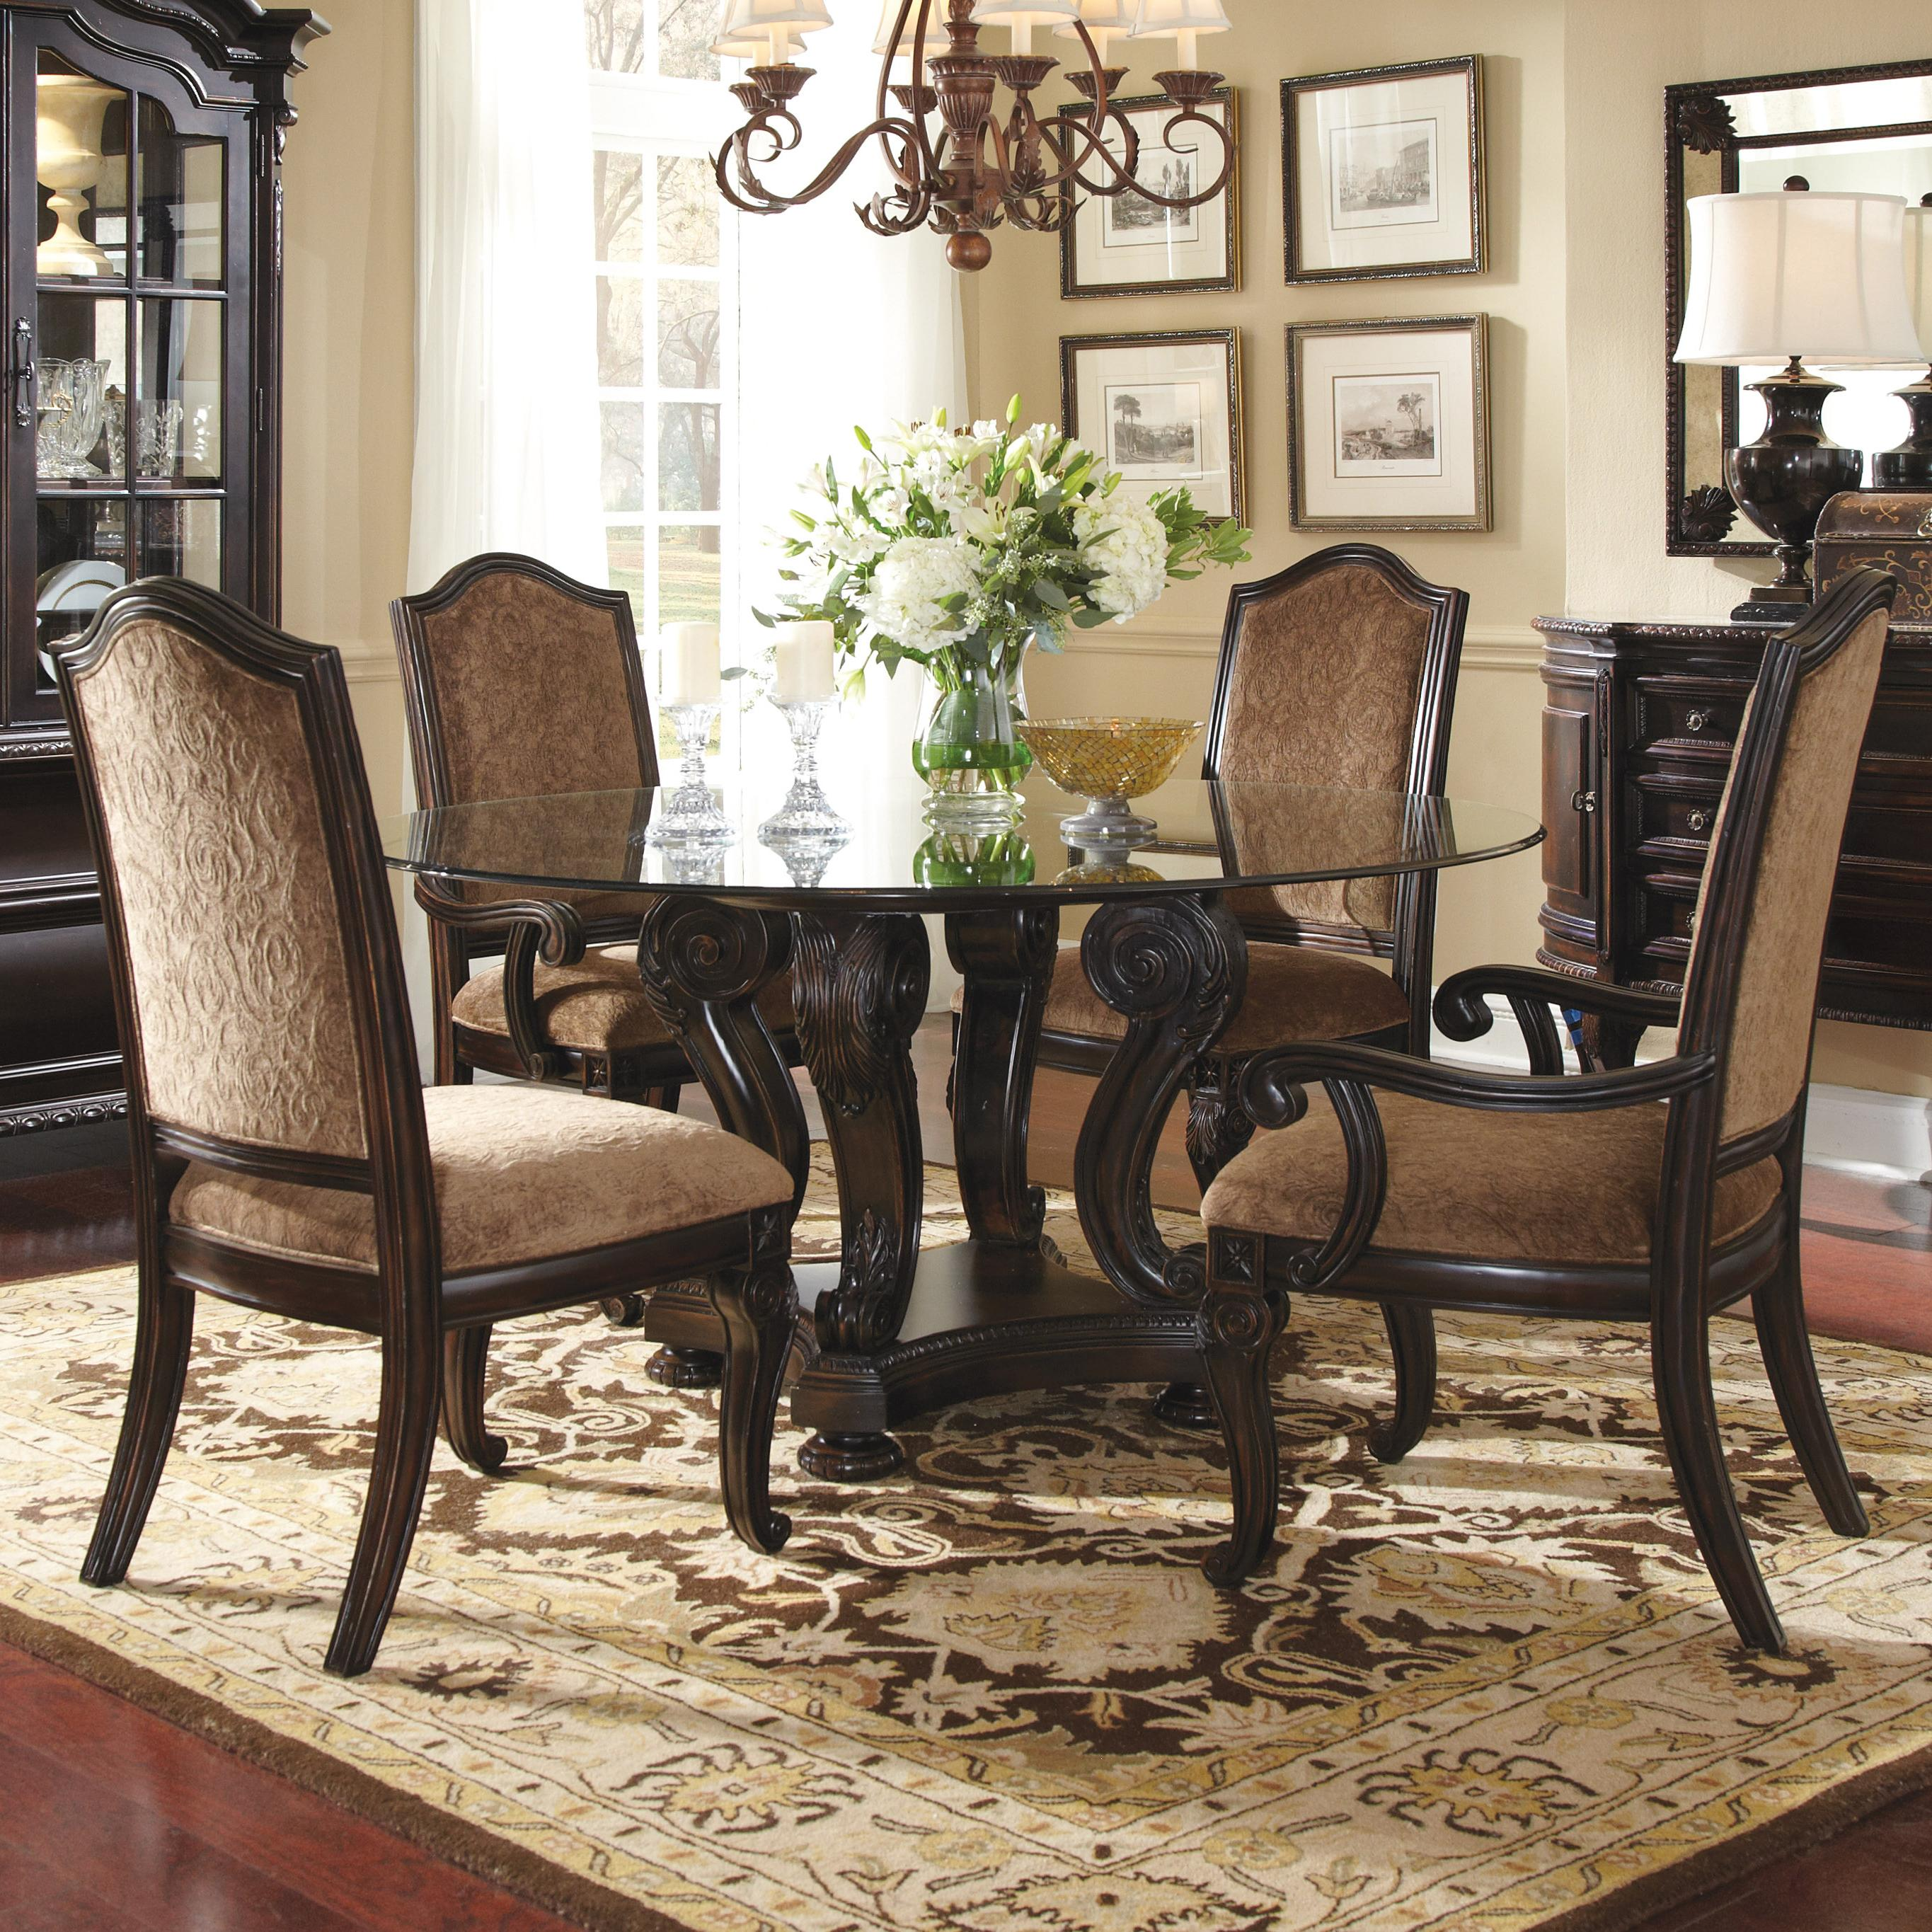 Dining Room With Pedestal Table Base For Glass Top Warm Chairs Wonderful Decorative Rug And Dark